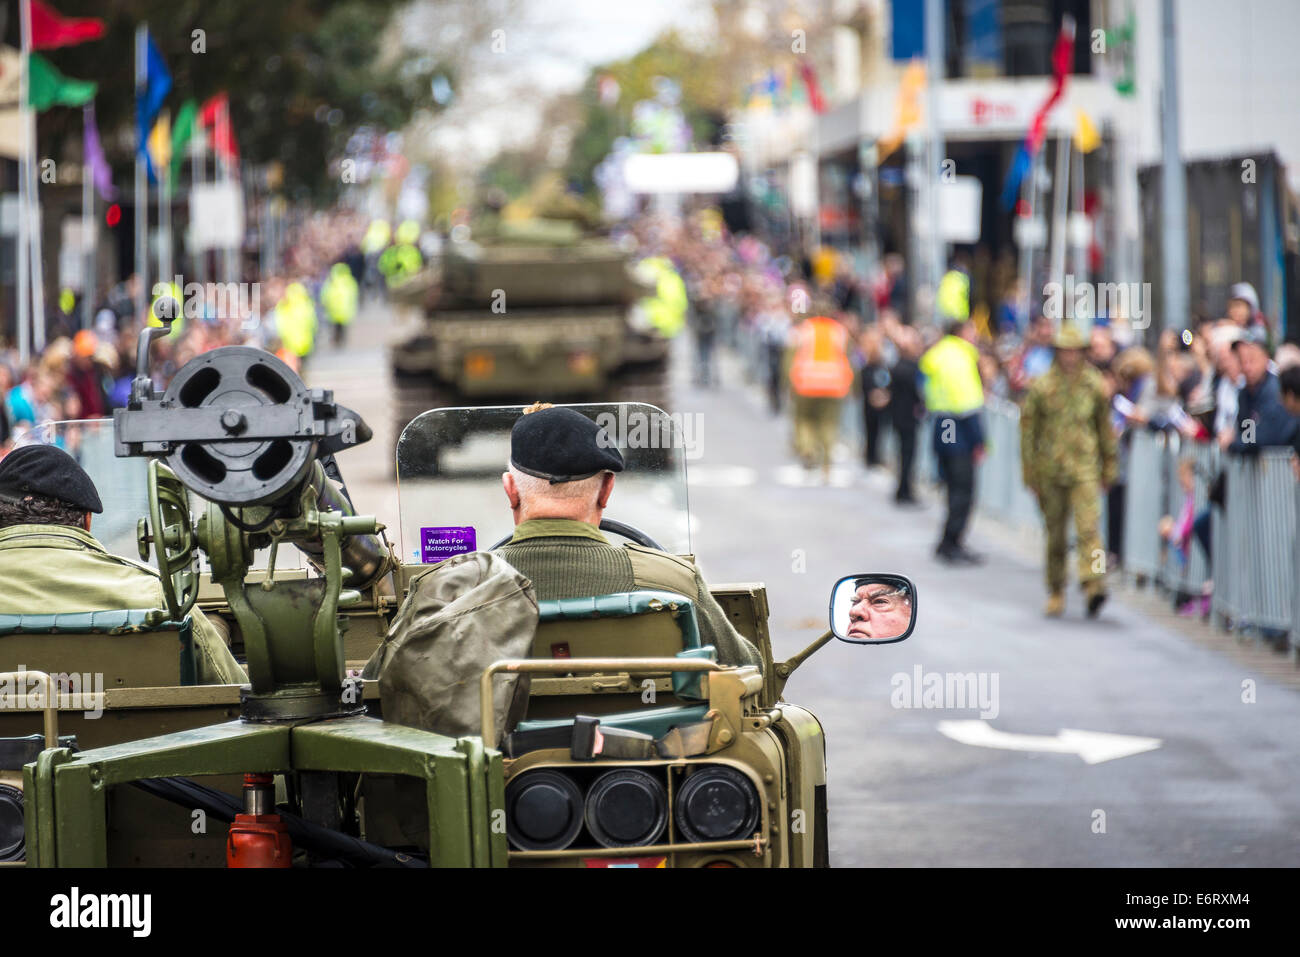 .A Light Cavalry Reconnaissance Land Rover follows the Centurian Mk5 Battle Tank in the parade down Macquarie Street, - Stock Image